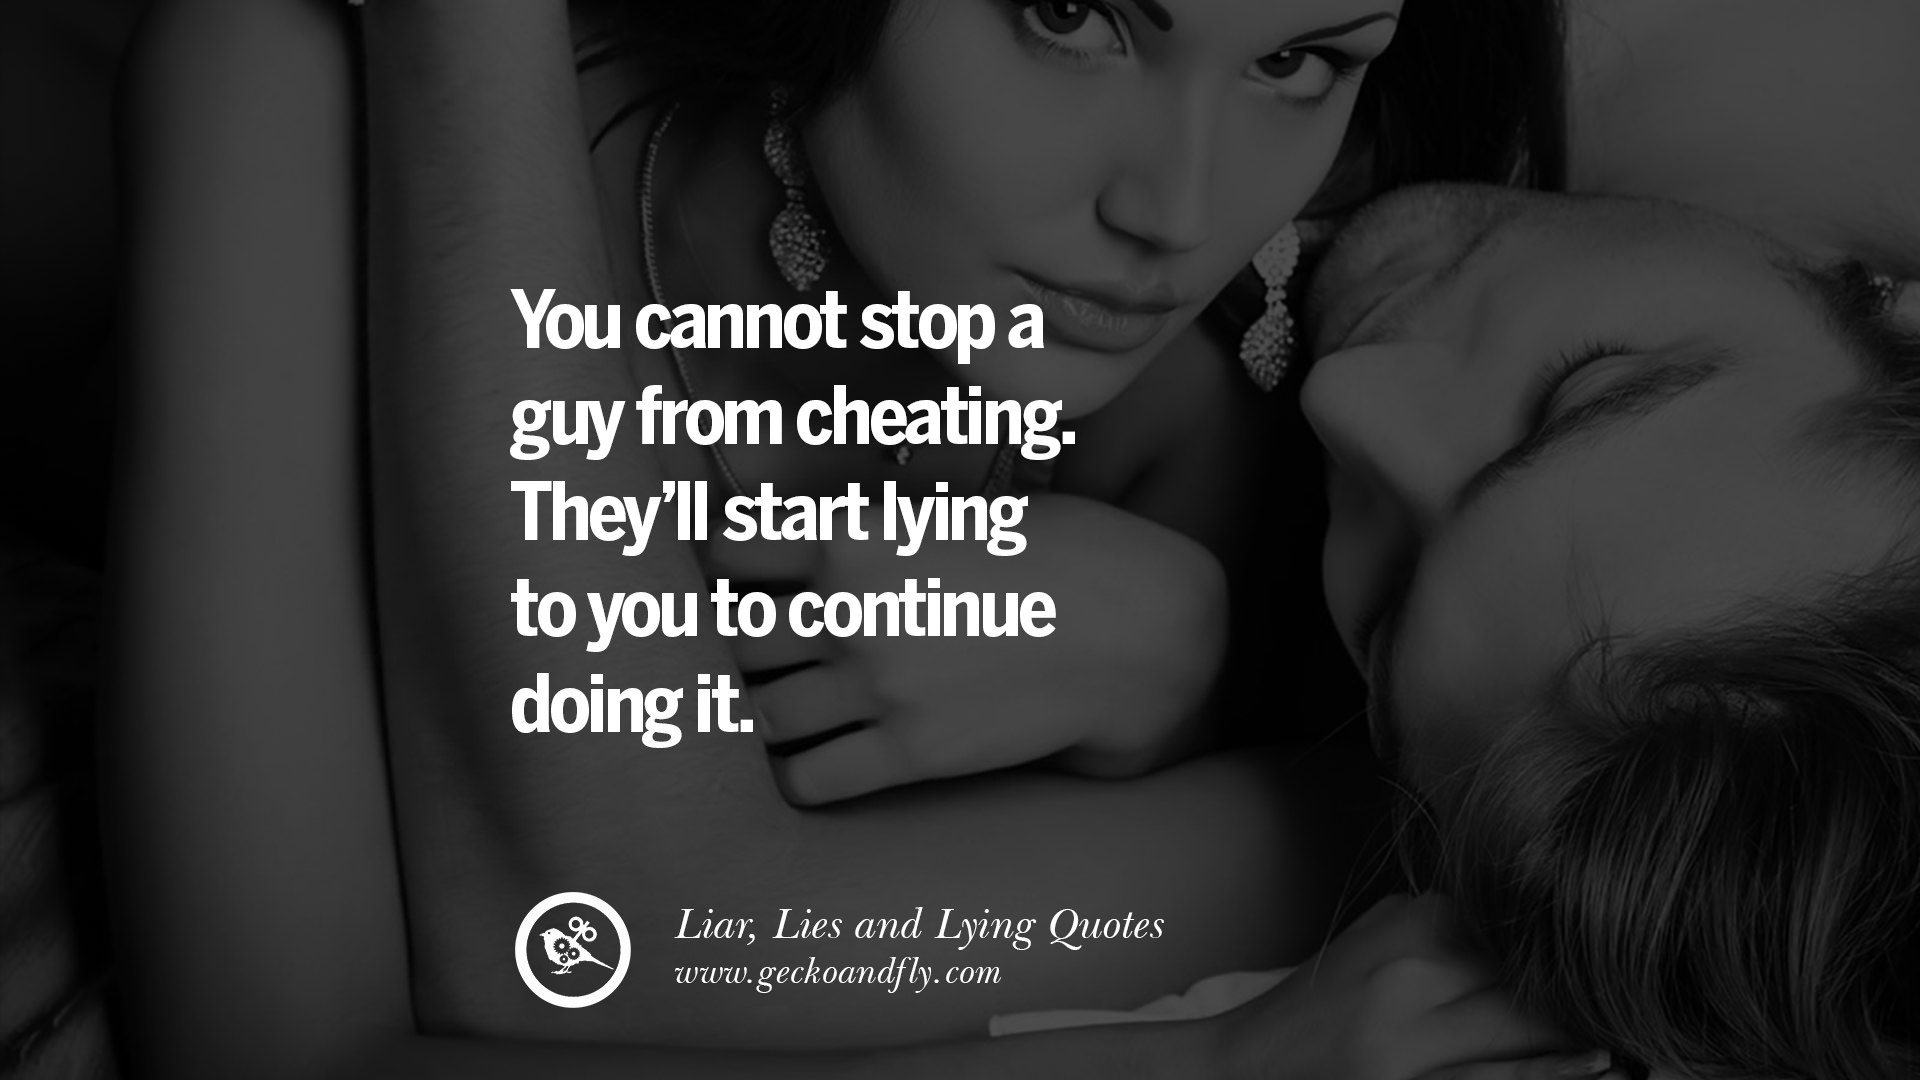 60 Quotes About Liar Lies and Lying Boyfriend In A ...